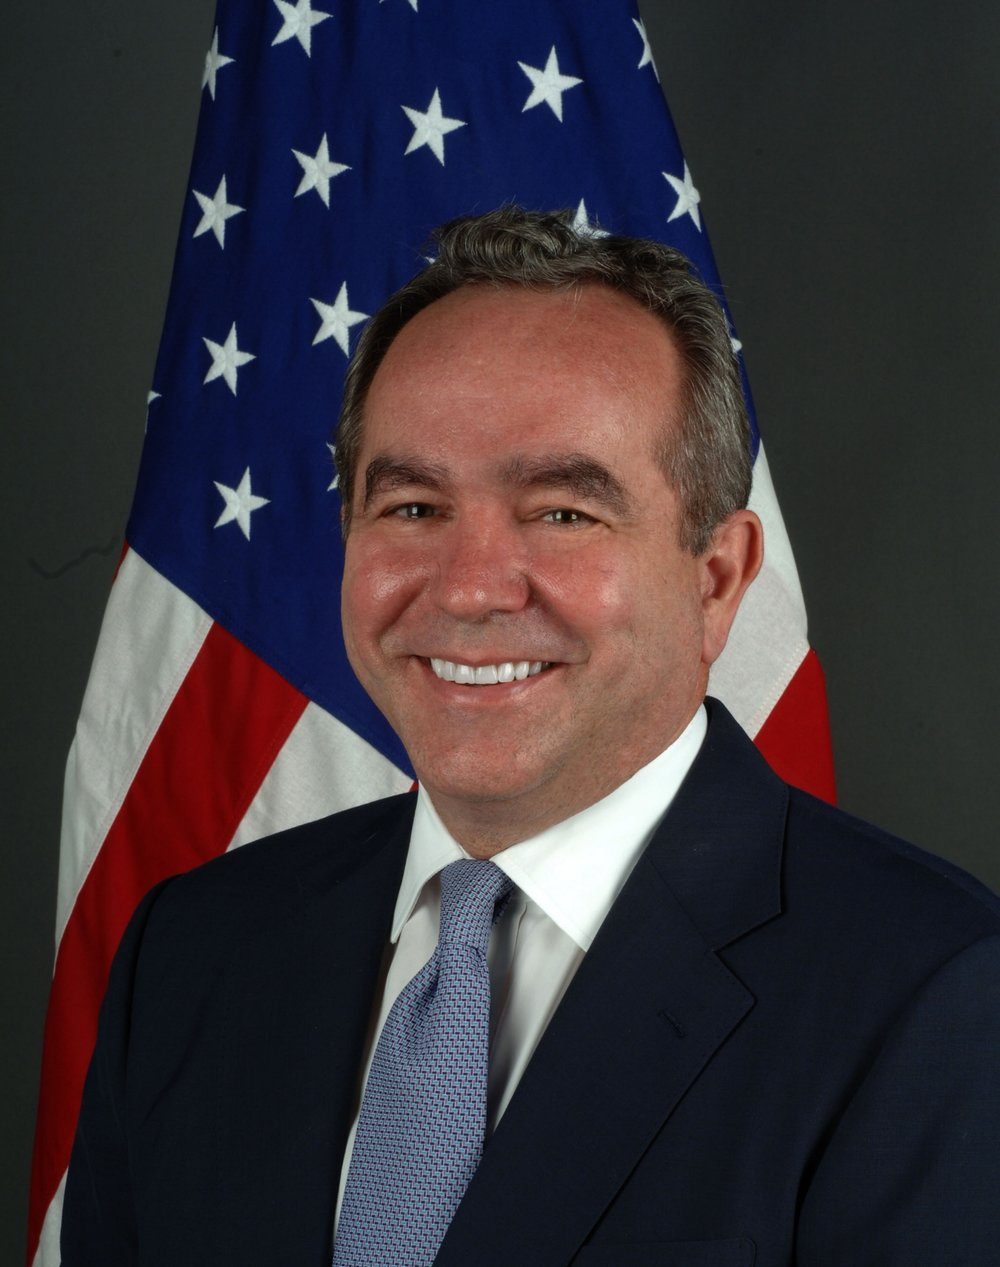 The Honorable Kurt M. Campbell (U.S. Navy), Chairman and Chief Executive Officer, The Asia Group